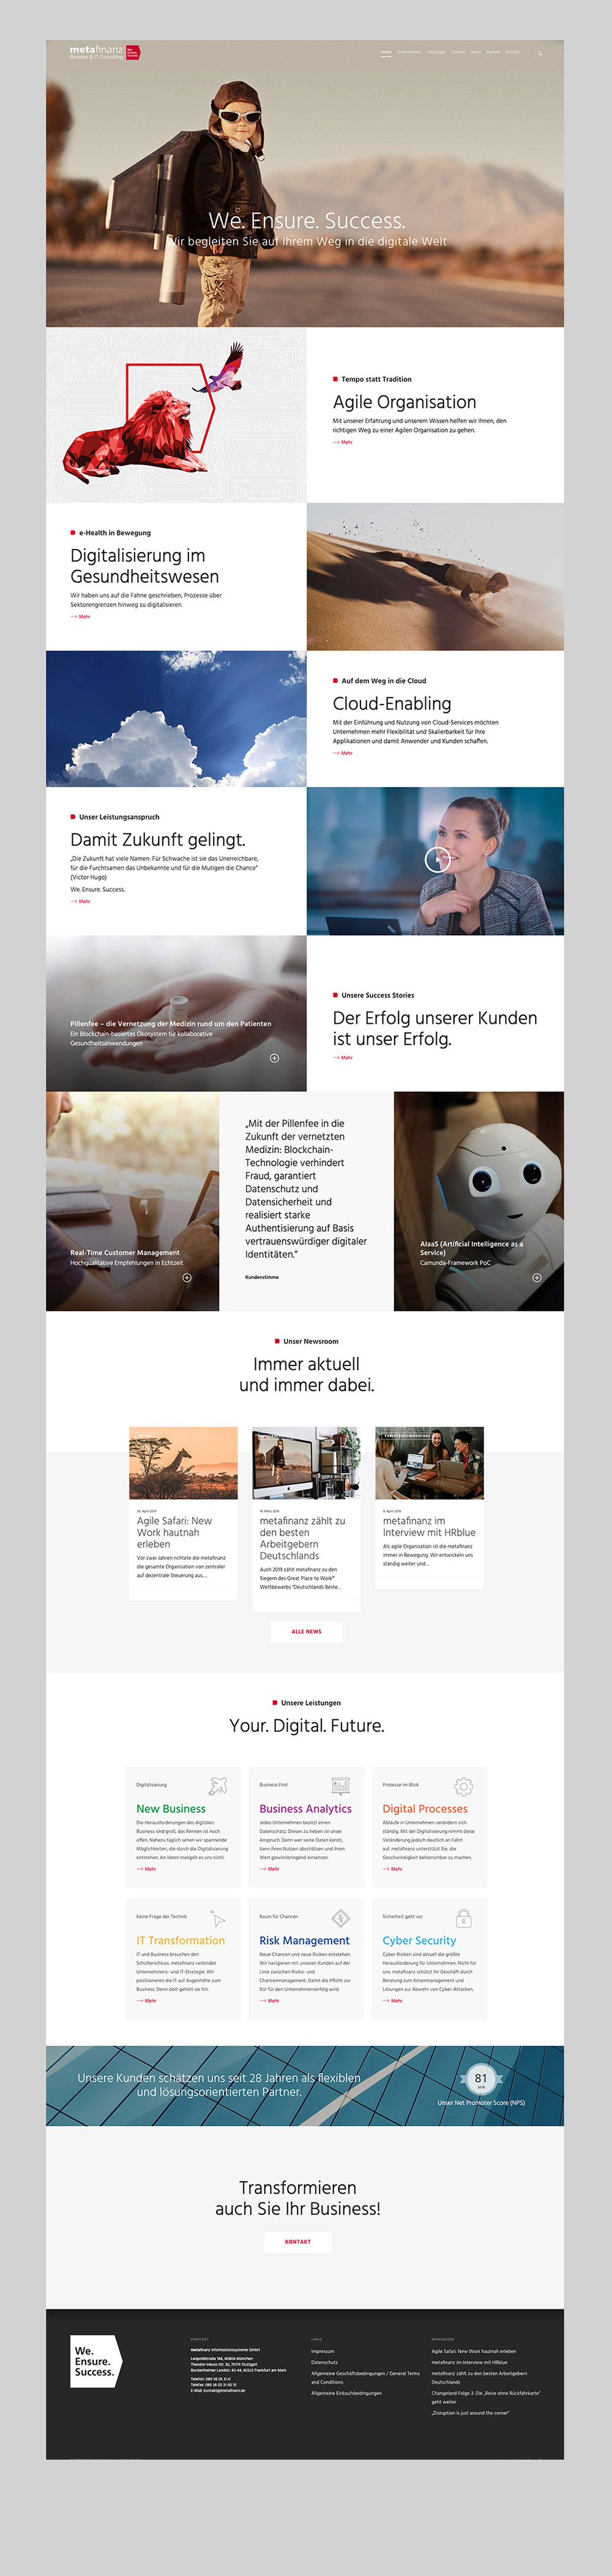 metafinanz – Web Design – Home